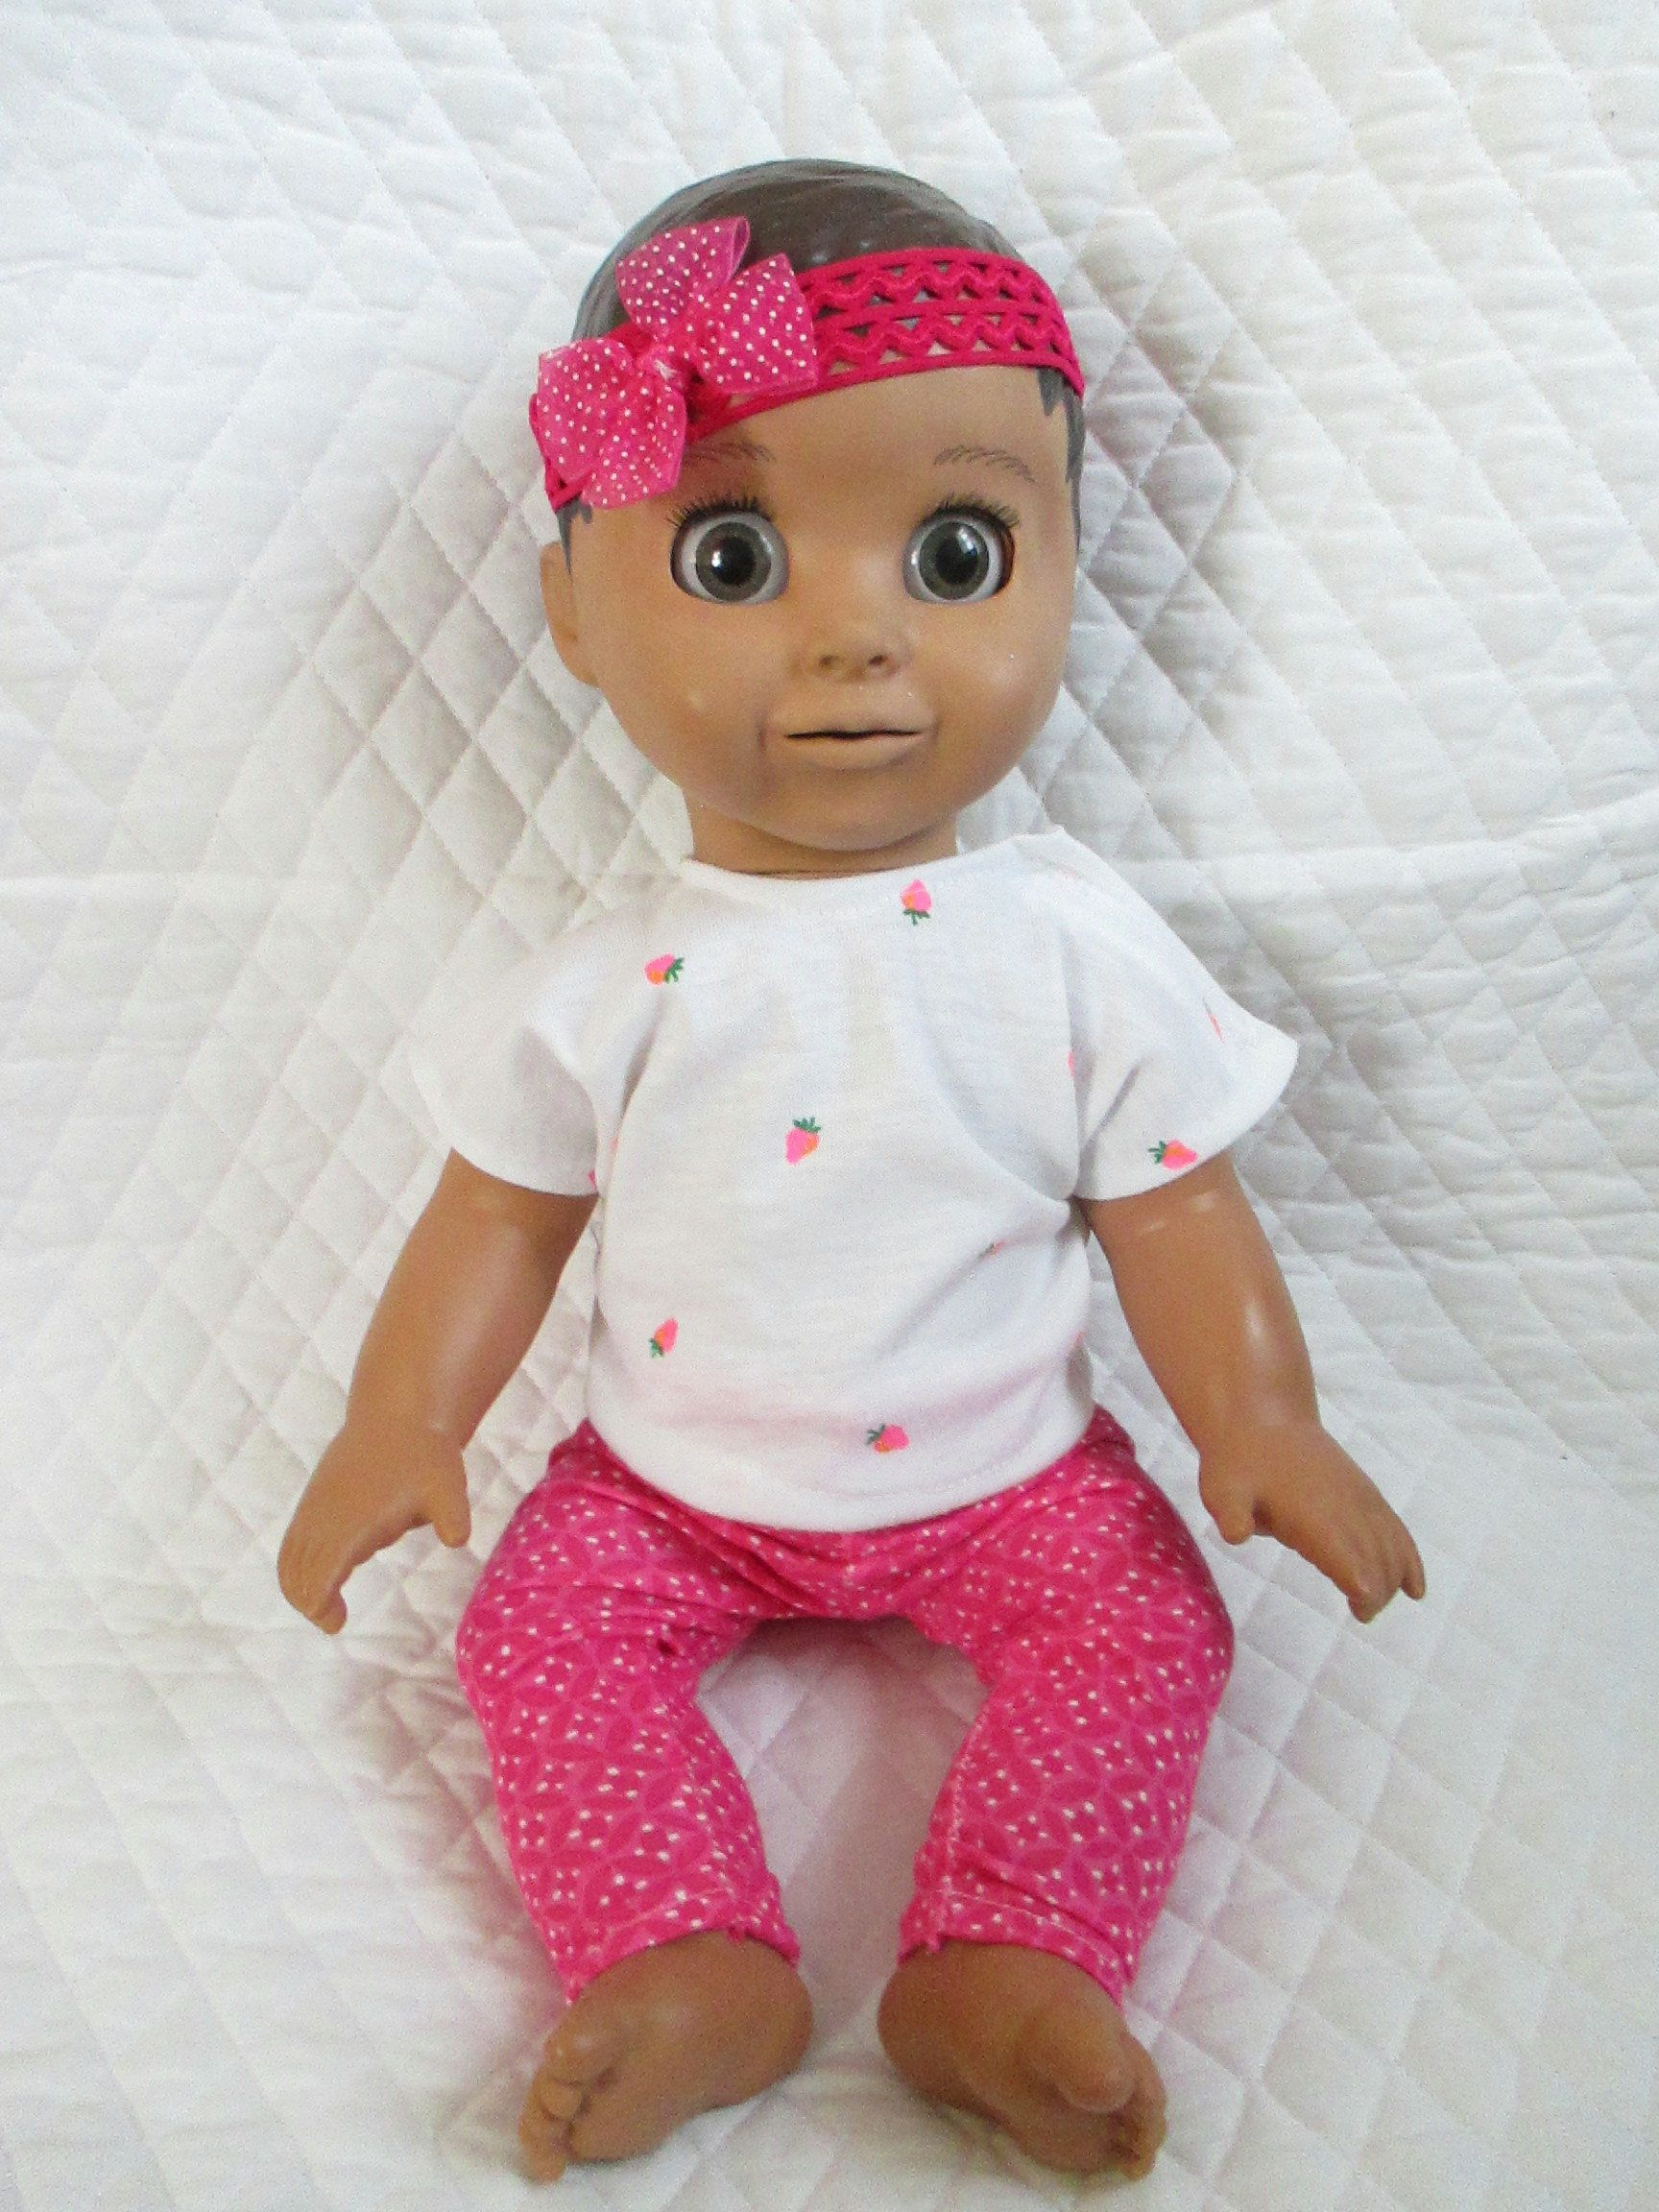 Luvabella Doll Clothes 3 Pc Outfit Strawberry Top Pink Pants